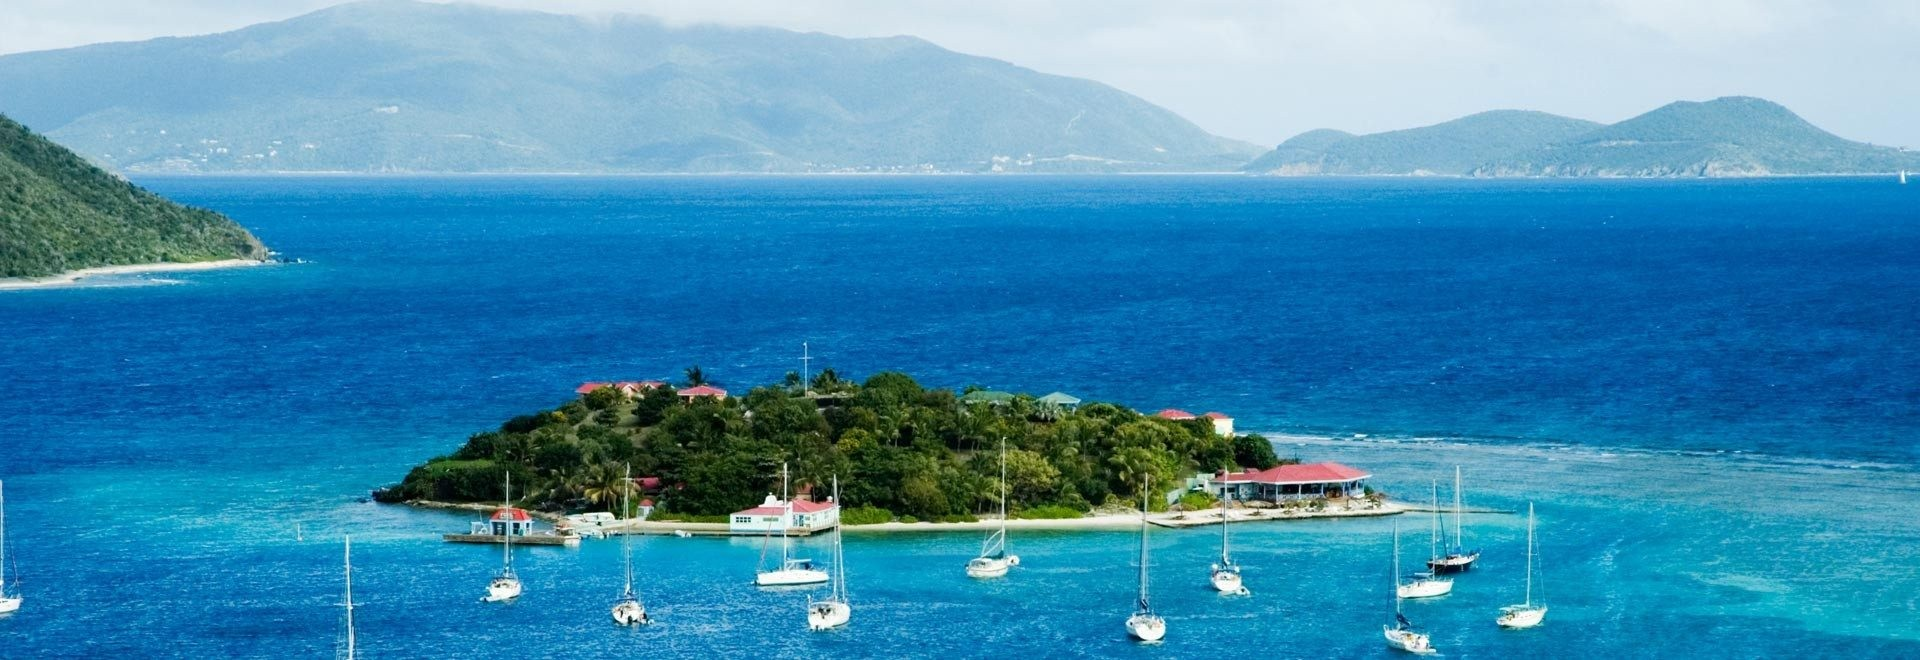 Tennis Vacations and Holidays in Virgin Islands - Book tennis resorts and tennis camps in Virgin Islands